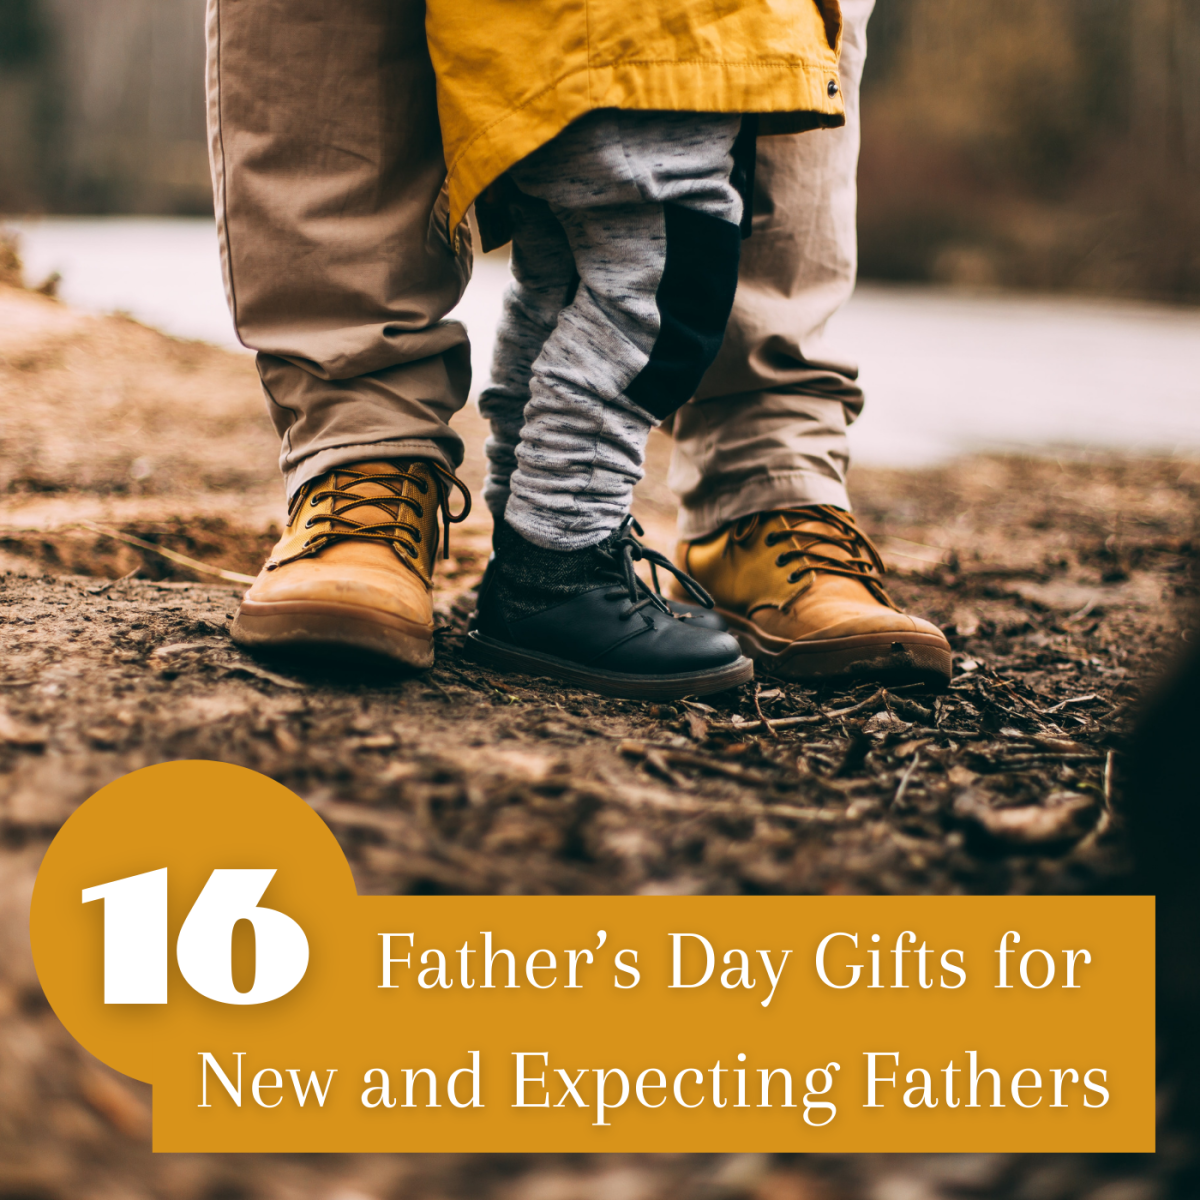 16 Father's Day gifts for new and expecting fathers.